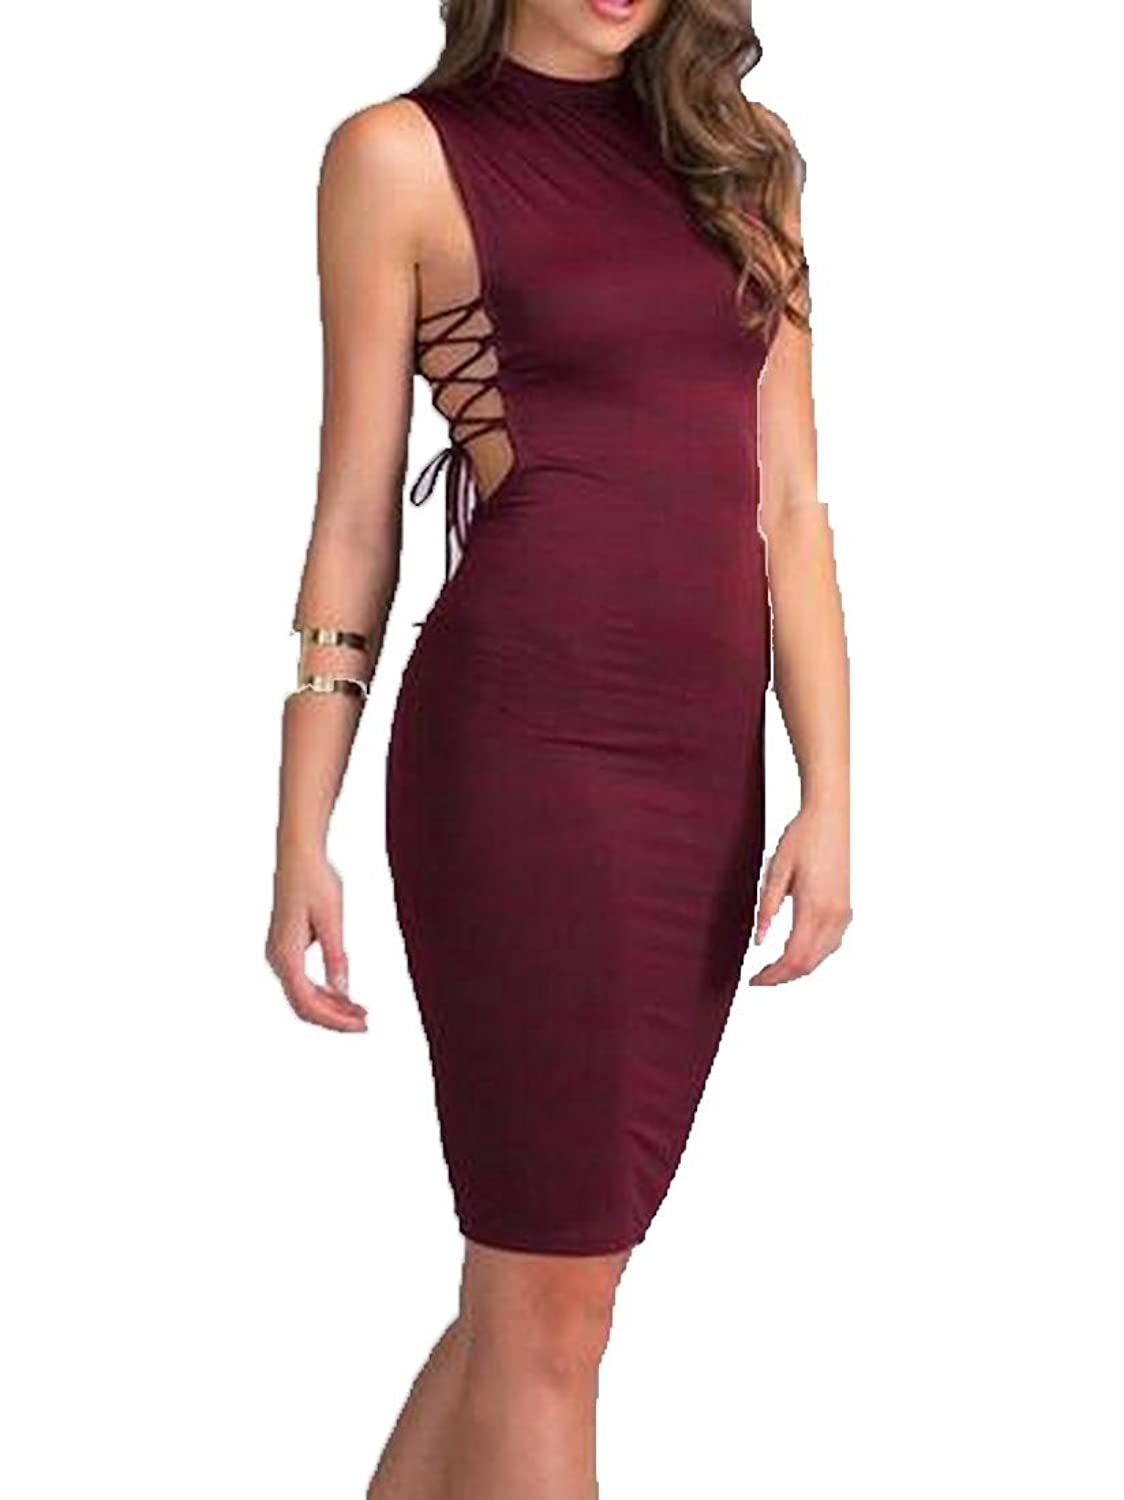 Winwinus Women's Hollow Out Bandage Strappy Bodycon Dress WineRed US L